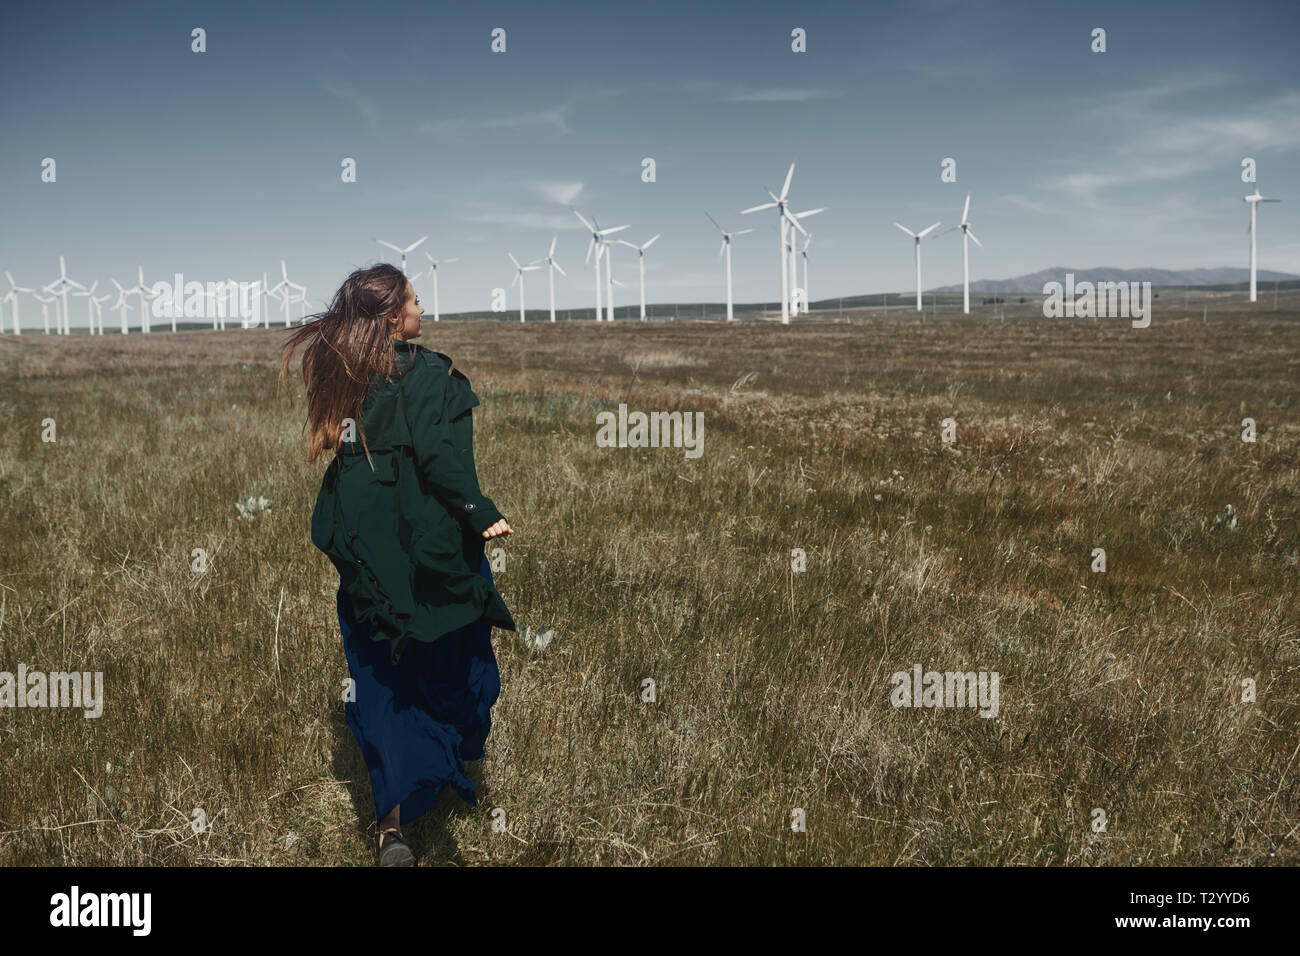 Woman with long tousled hair next to the wind turbine with the wind blowing - Stock Image